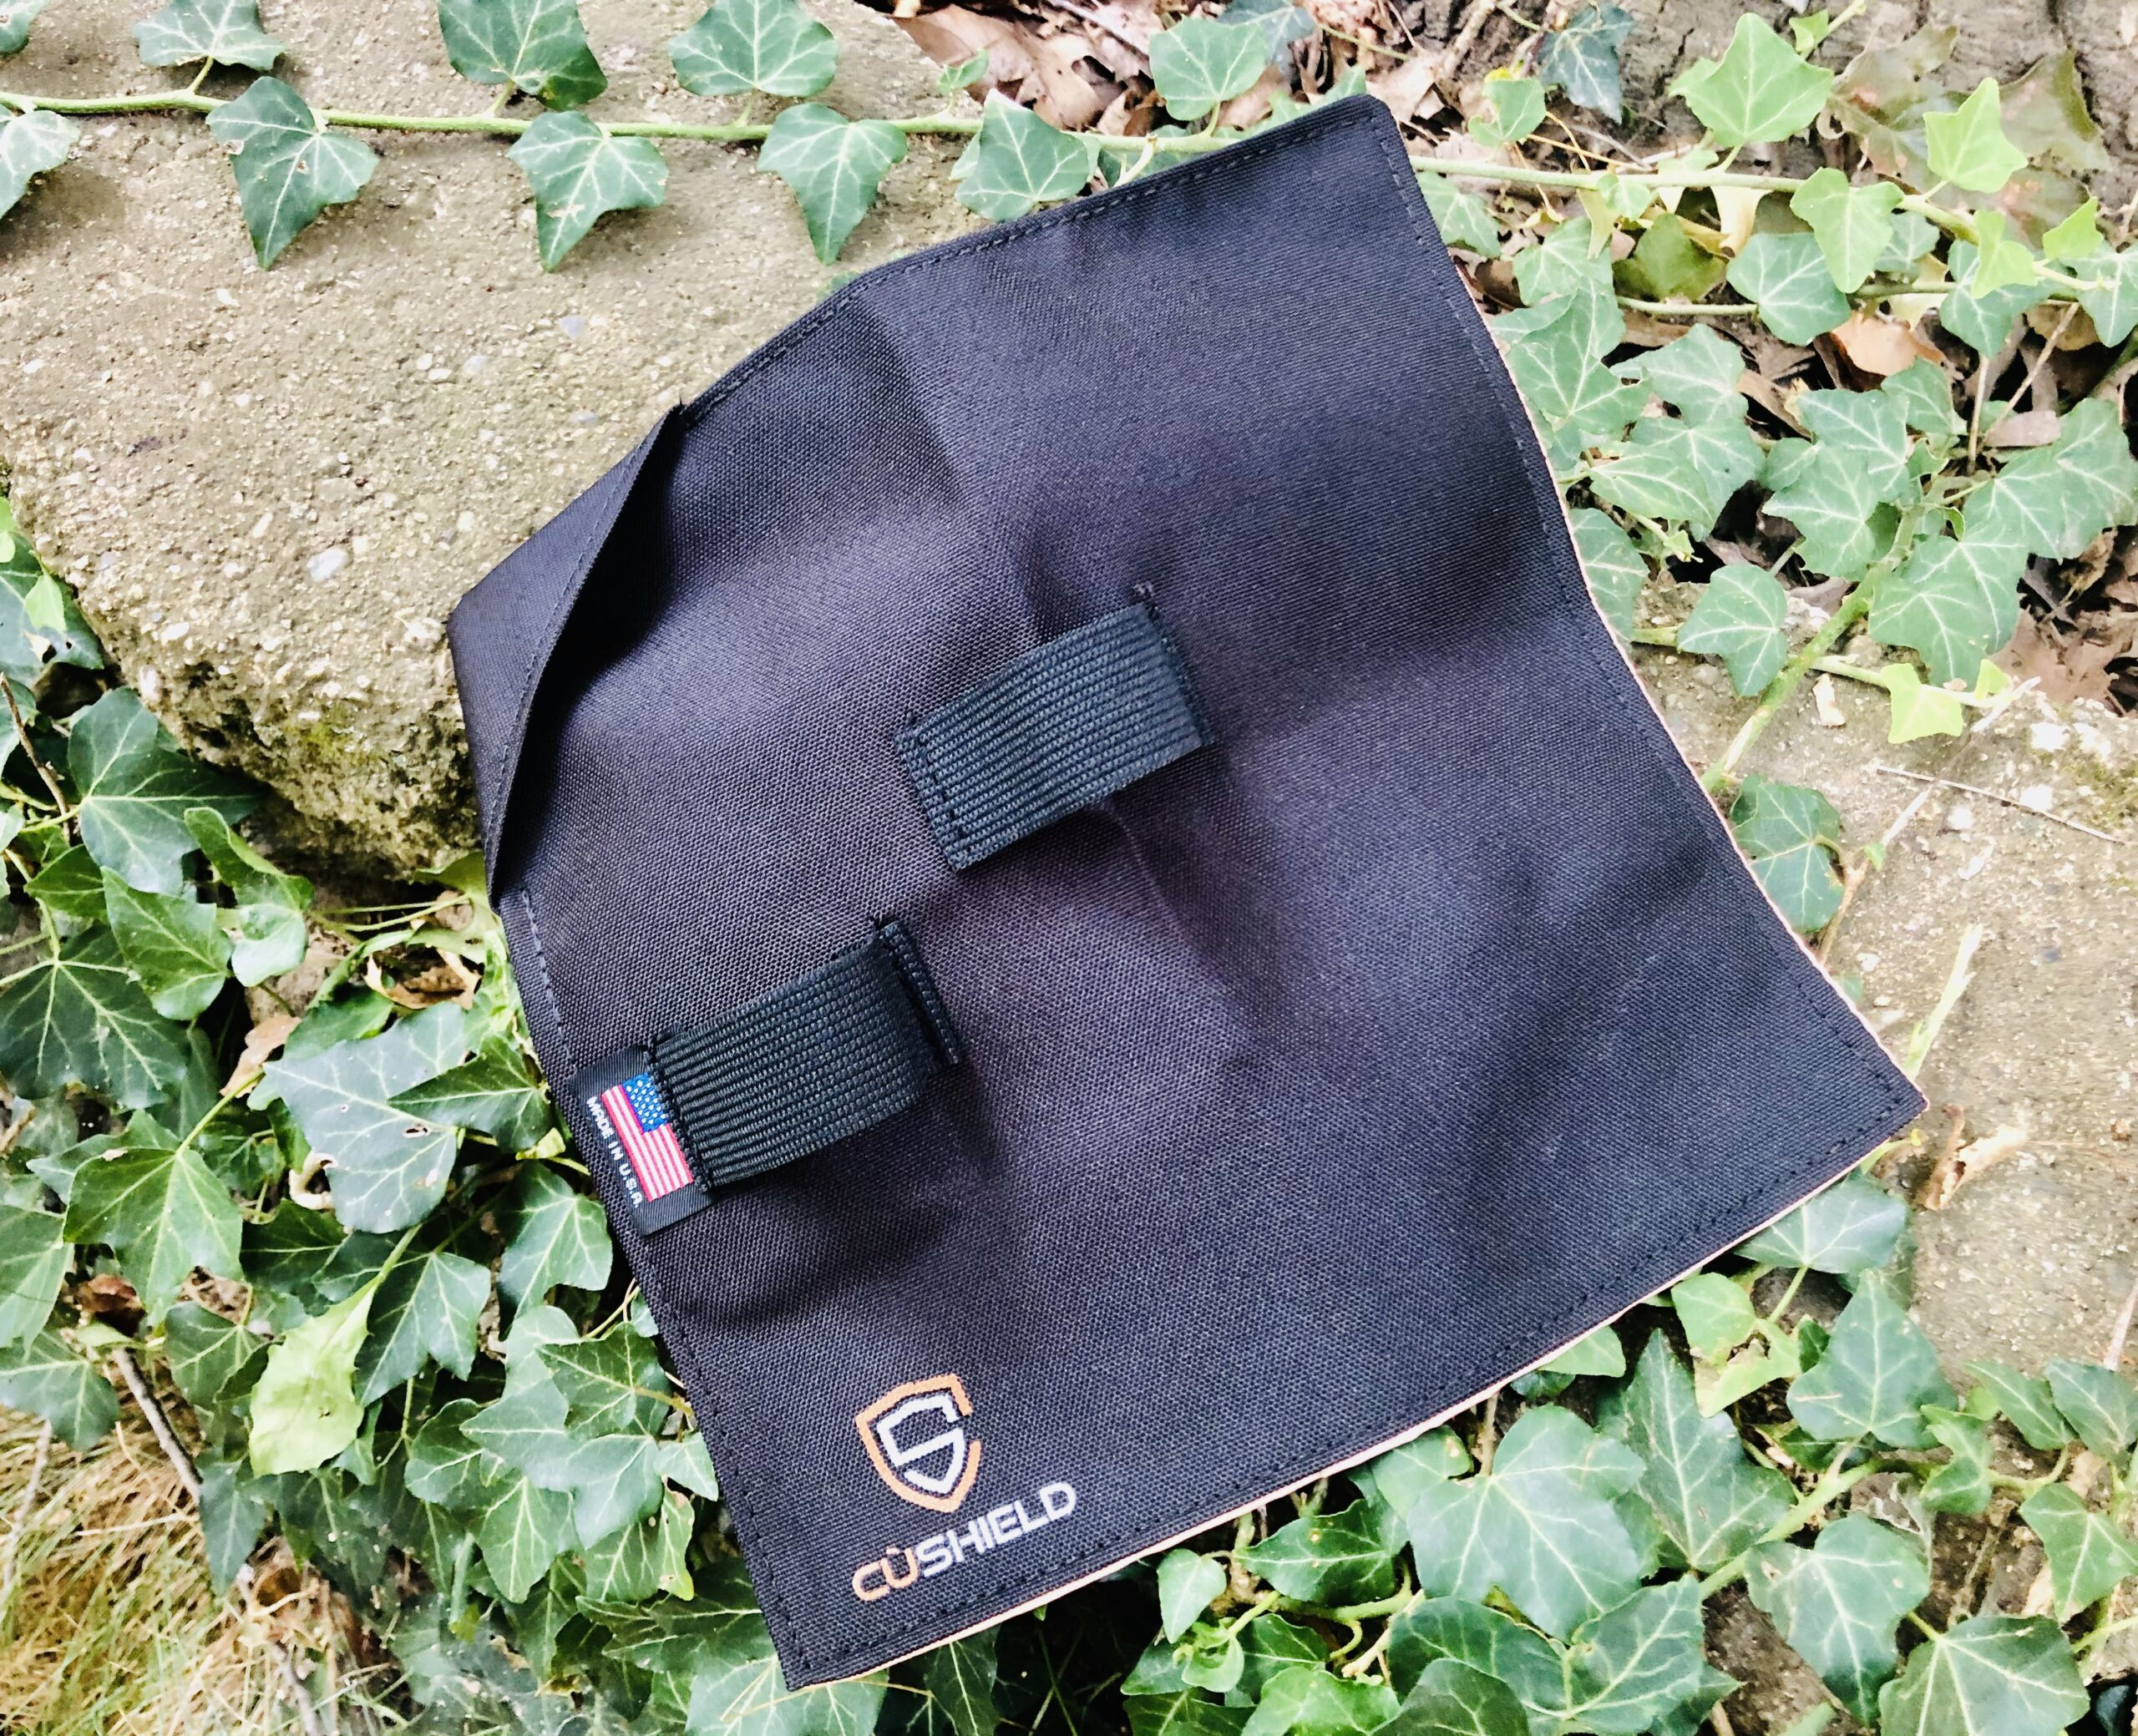 CuShield EDS Handkerchief Outside 1